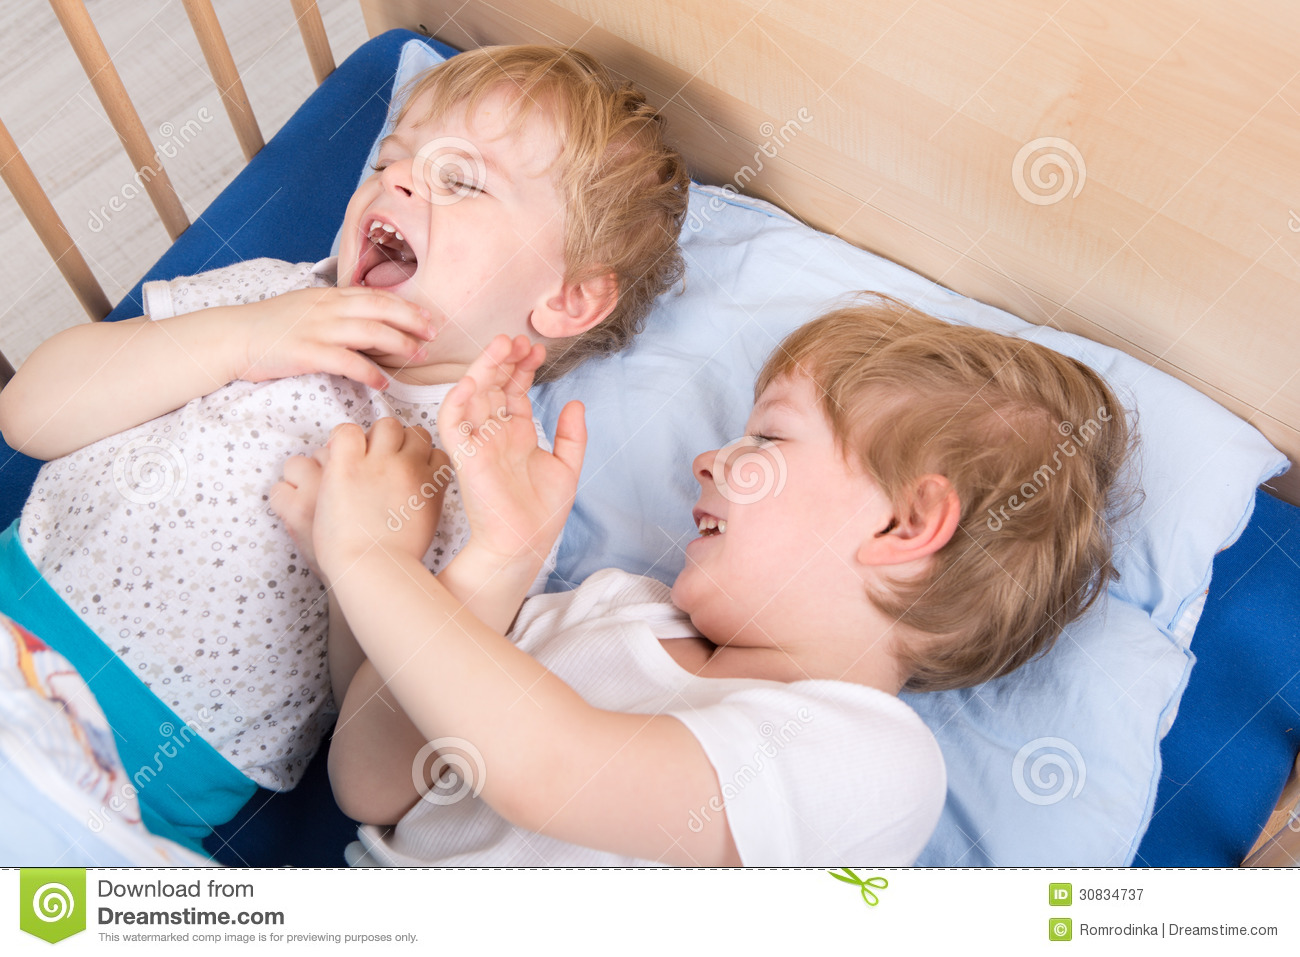 ... Free Stock Photography: Two little toddler boys having fun in bed